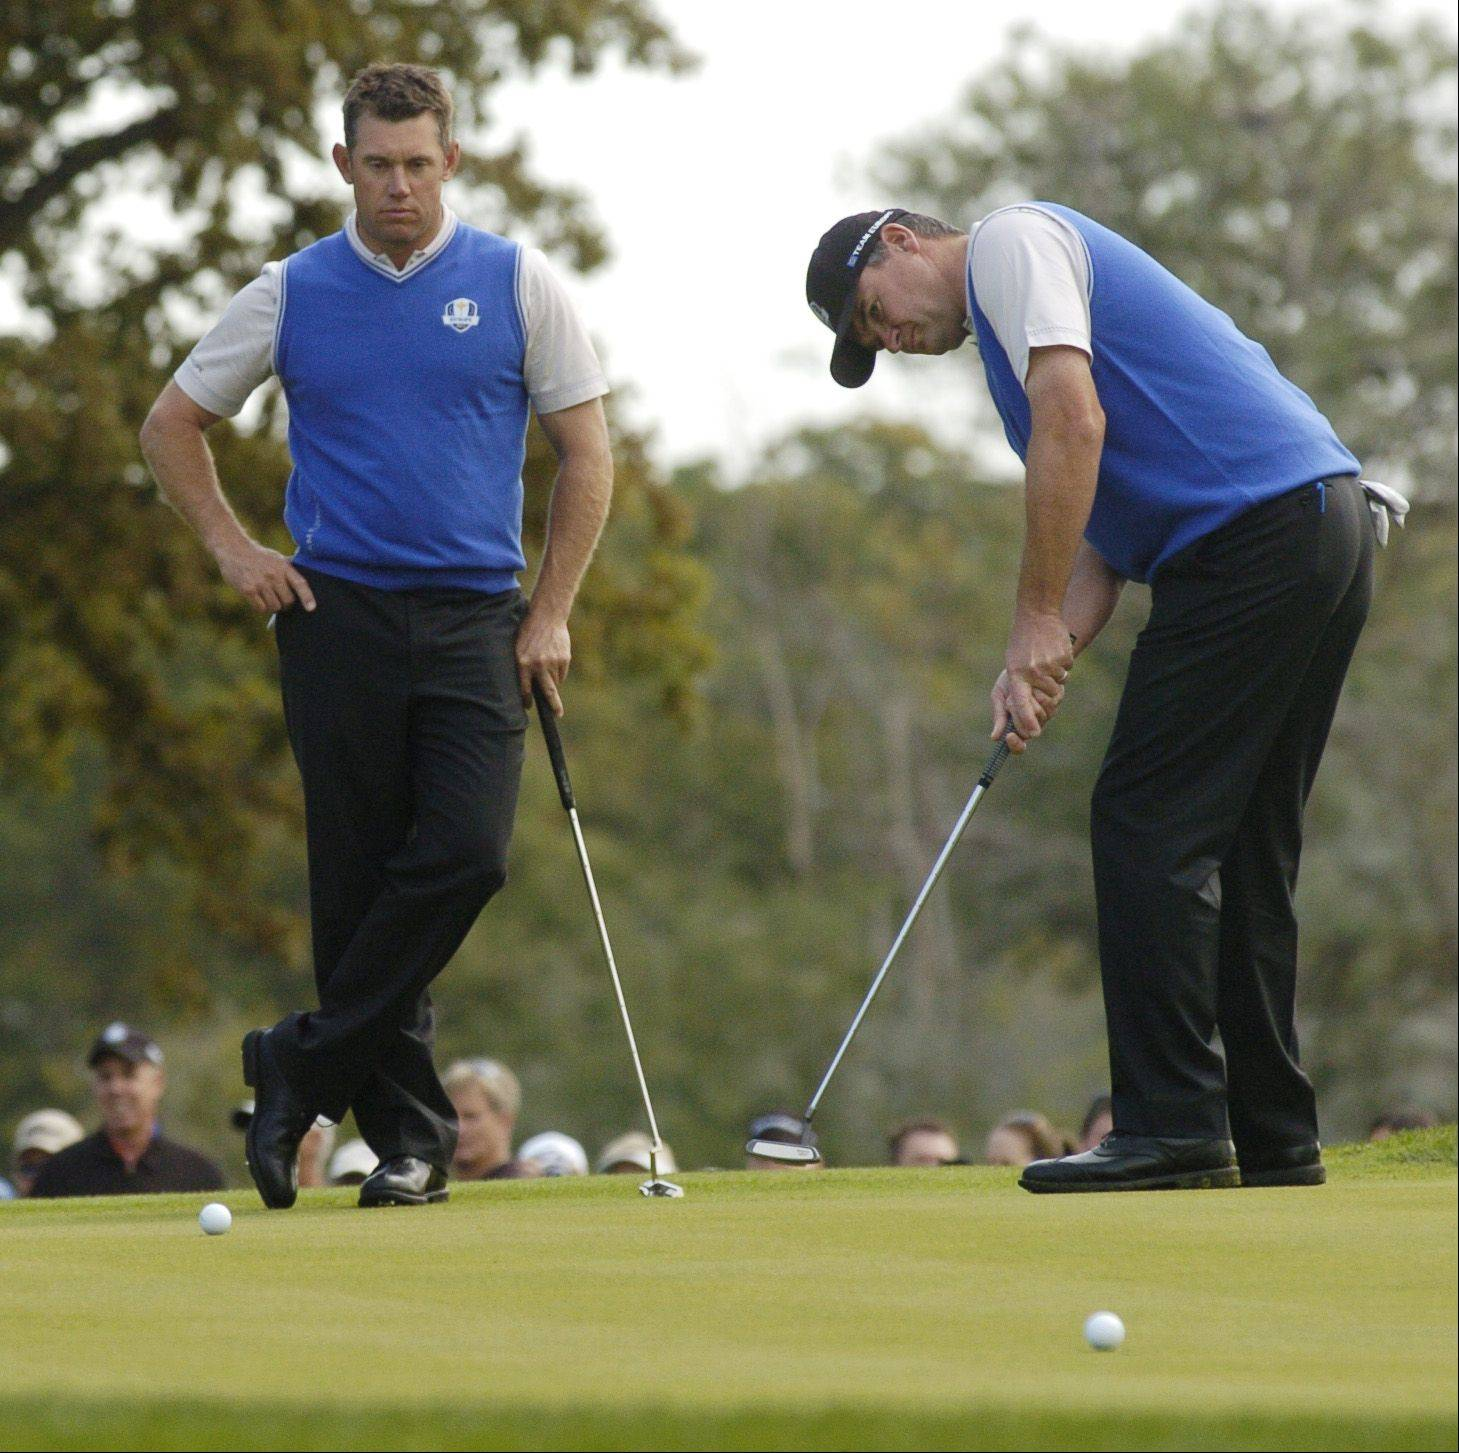 Lee Westwood of Team Europe and Paul Lawrie of Team Europe practice their putts on the first green.